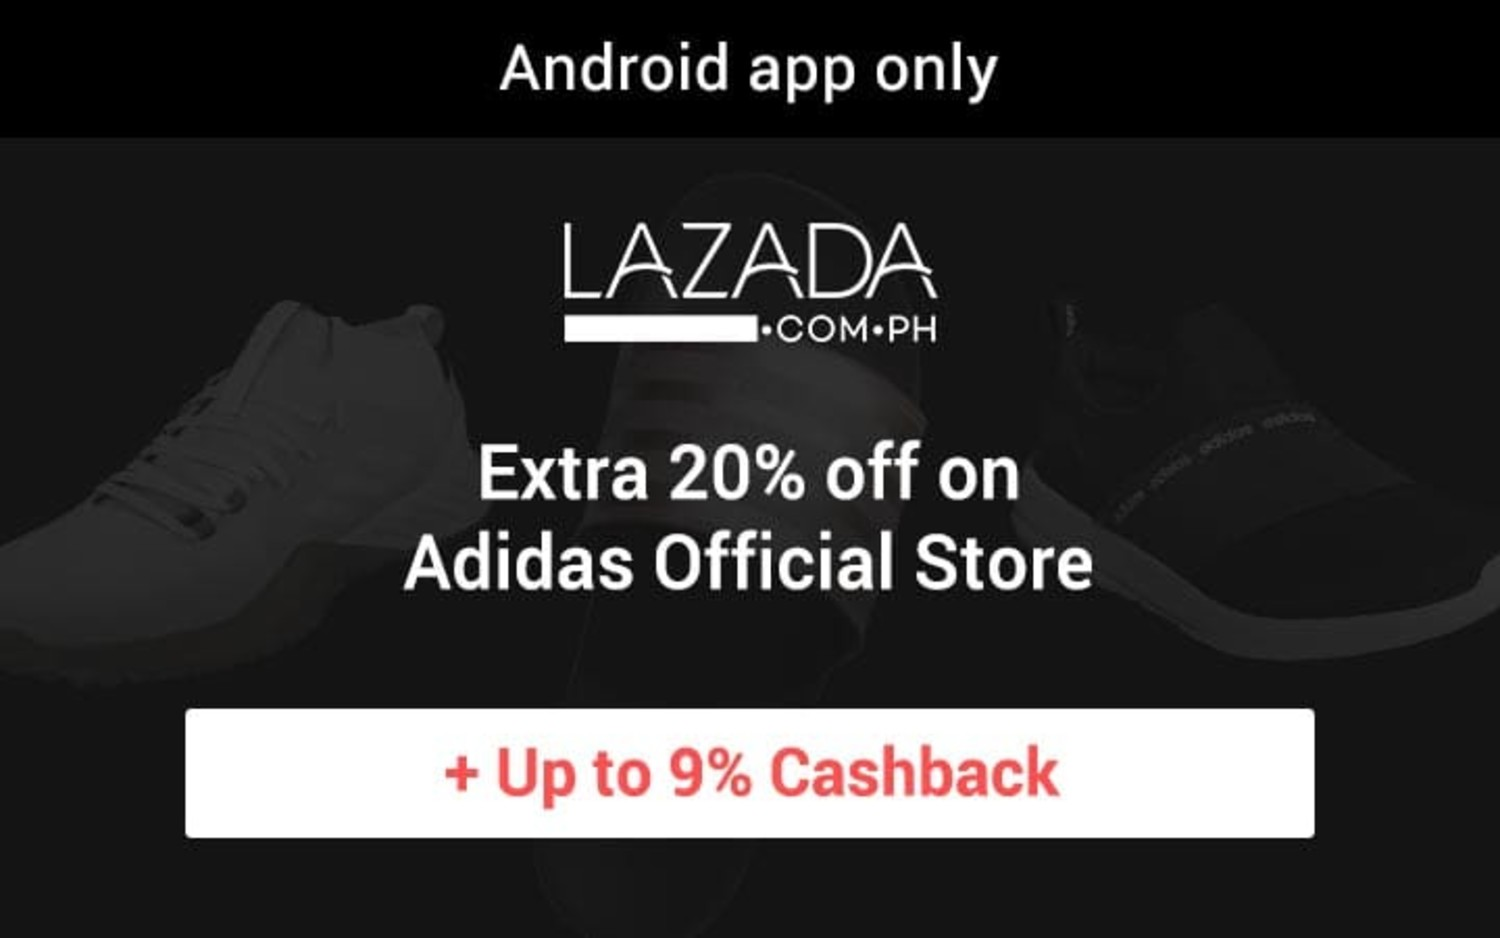 Lazada Mobile App | Extra 20% off on Adidas Official Store + Up to 9% Cashback